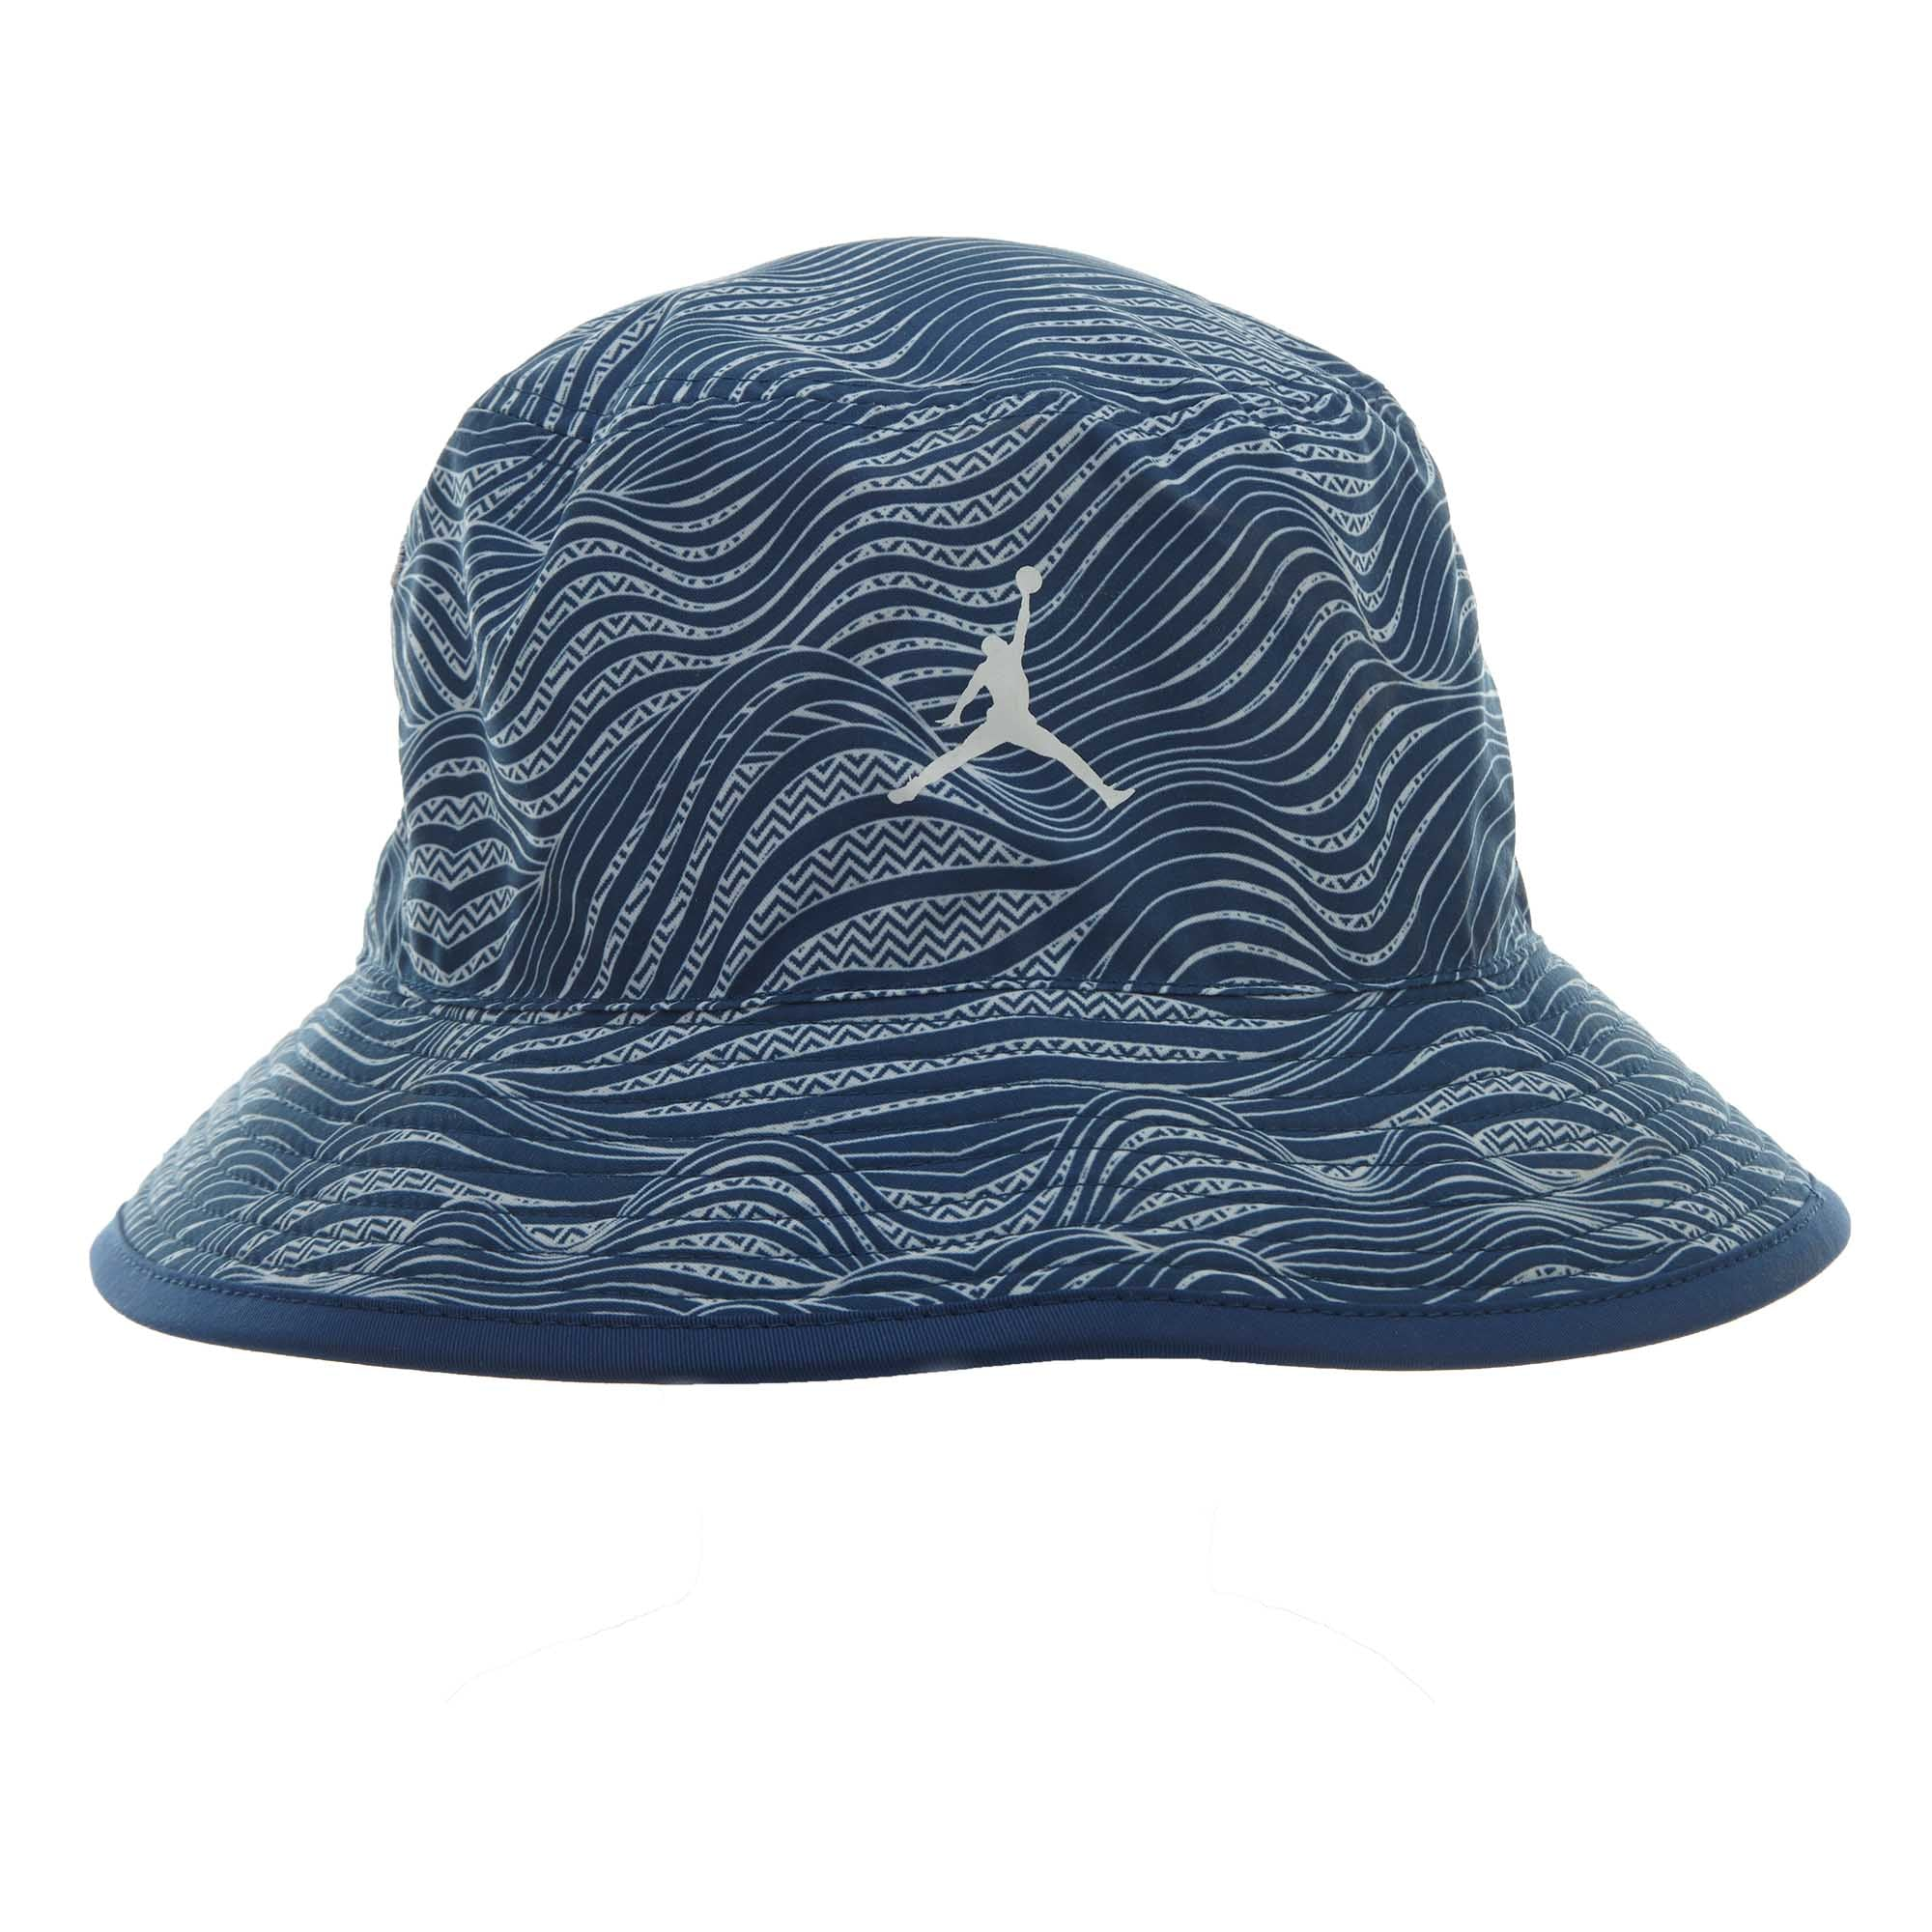 581010547937 Jordan Bucket Hat-french Unisex Style   724892. AIR JORDAN